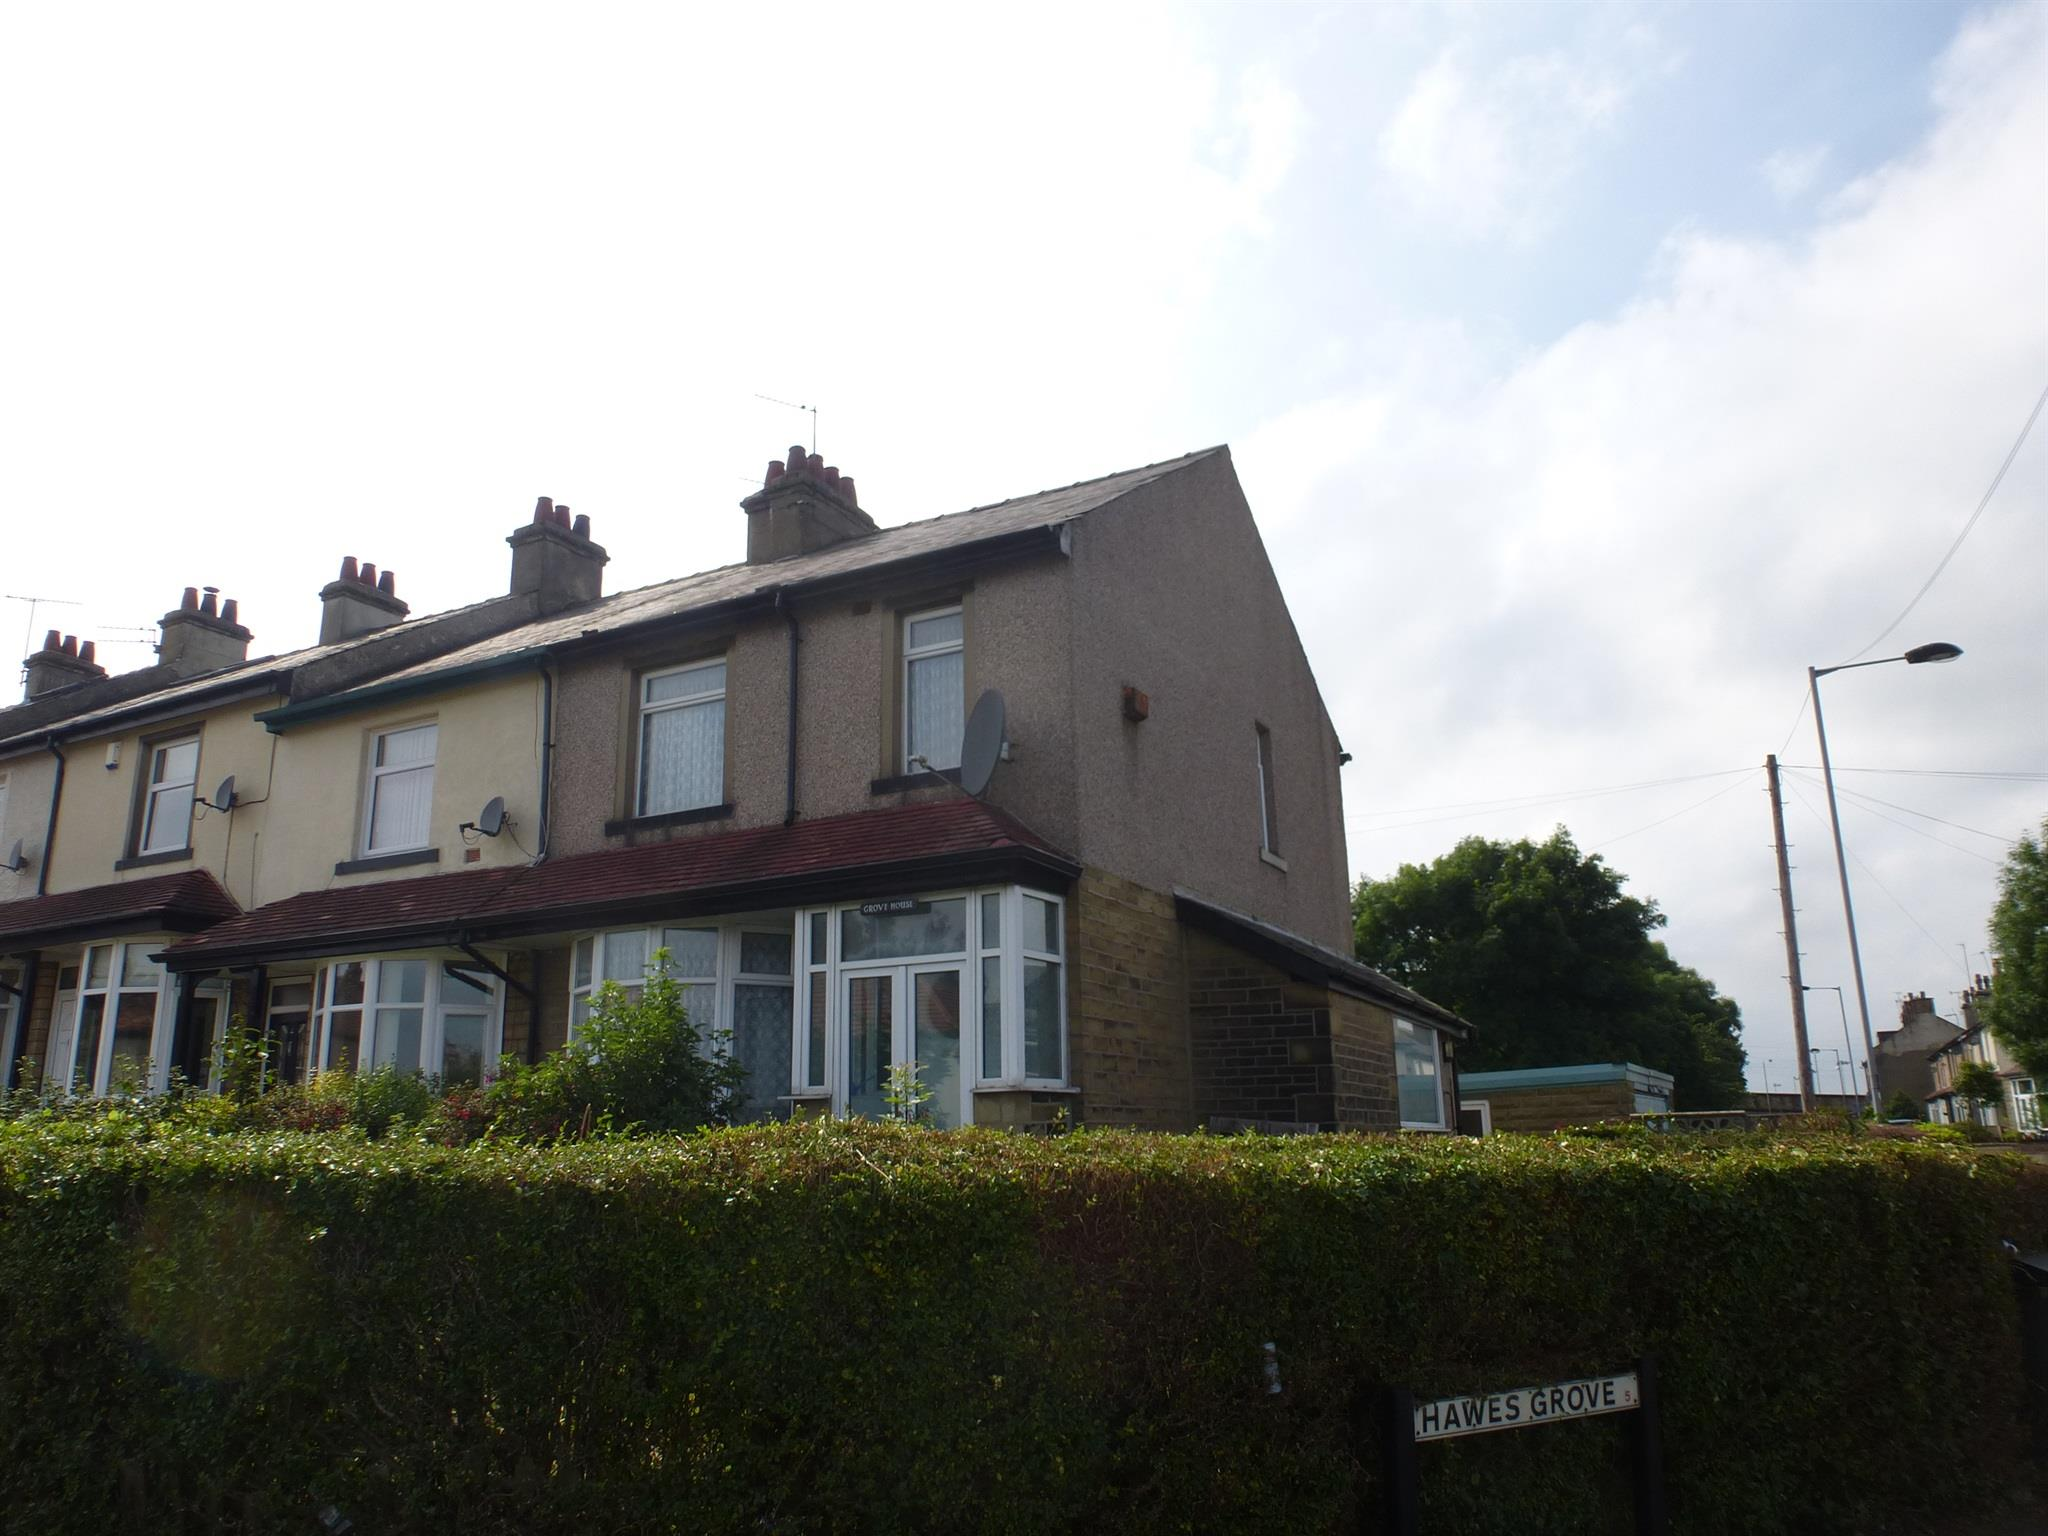 3 Bedroom Town House For Sale Hawes Grove Bradford Bd5 9an